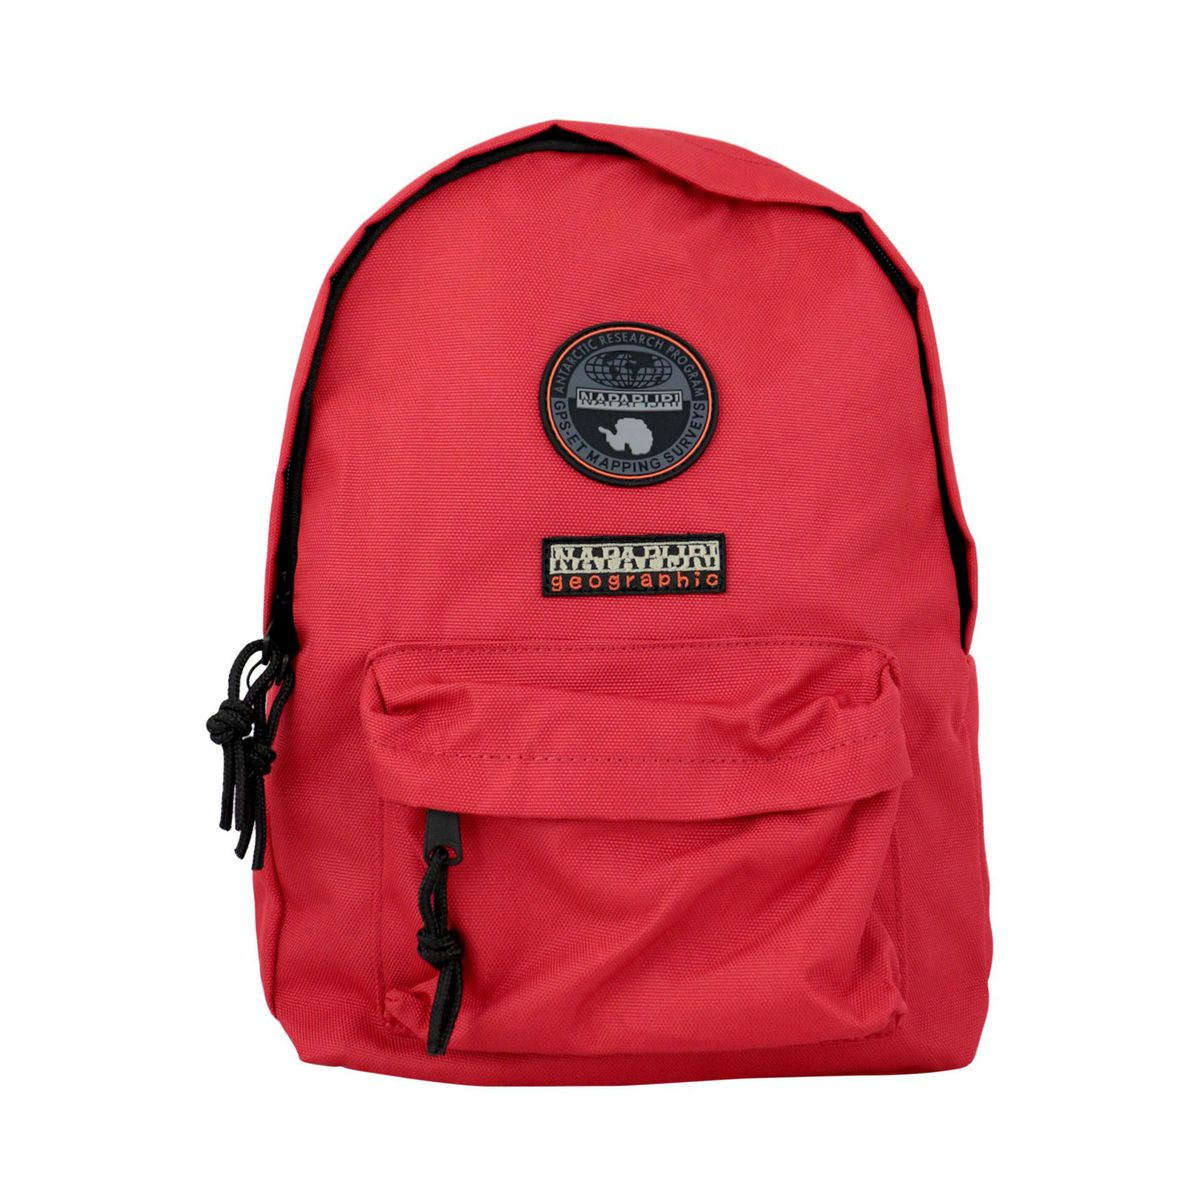 Voyage mini nylon backpack with logo Red NAPAPIJRI